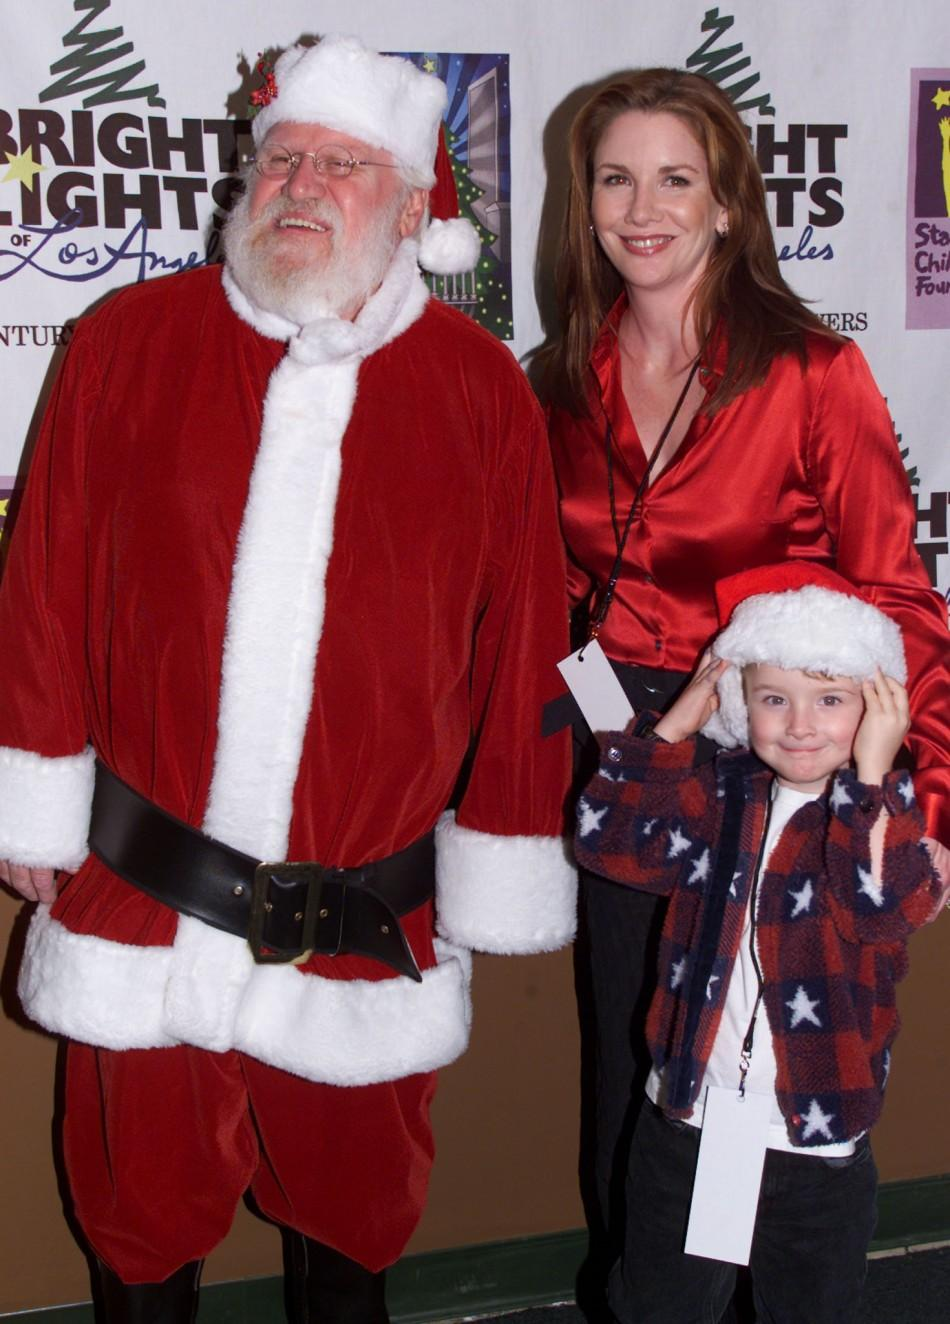 ACTRESS MELISSA GILBERT AND SON POSE WITH SANTA IN LOS ANGELES.